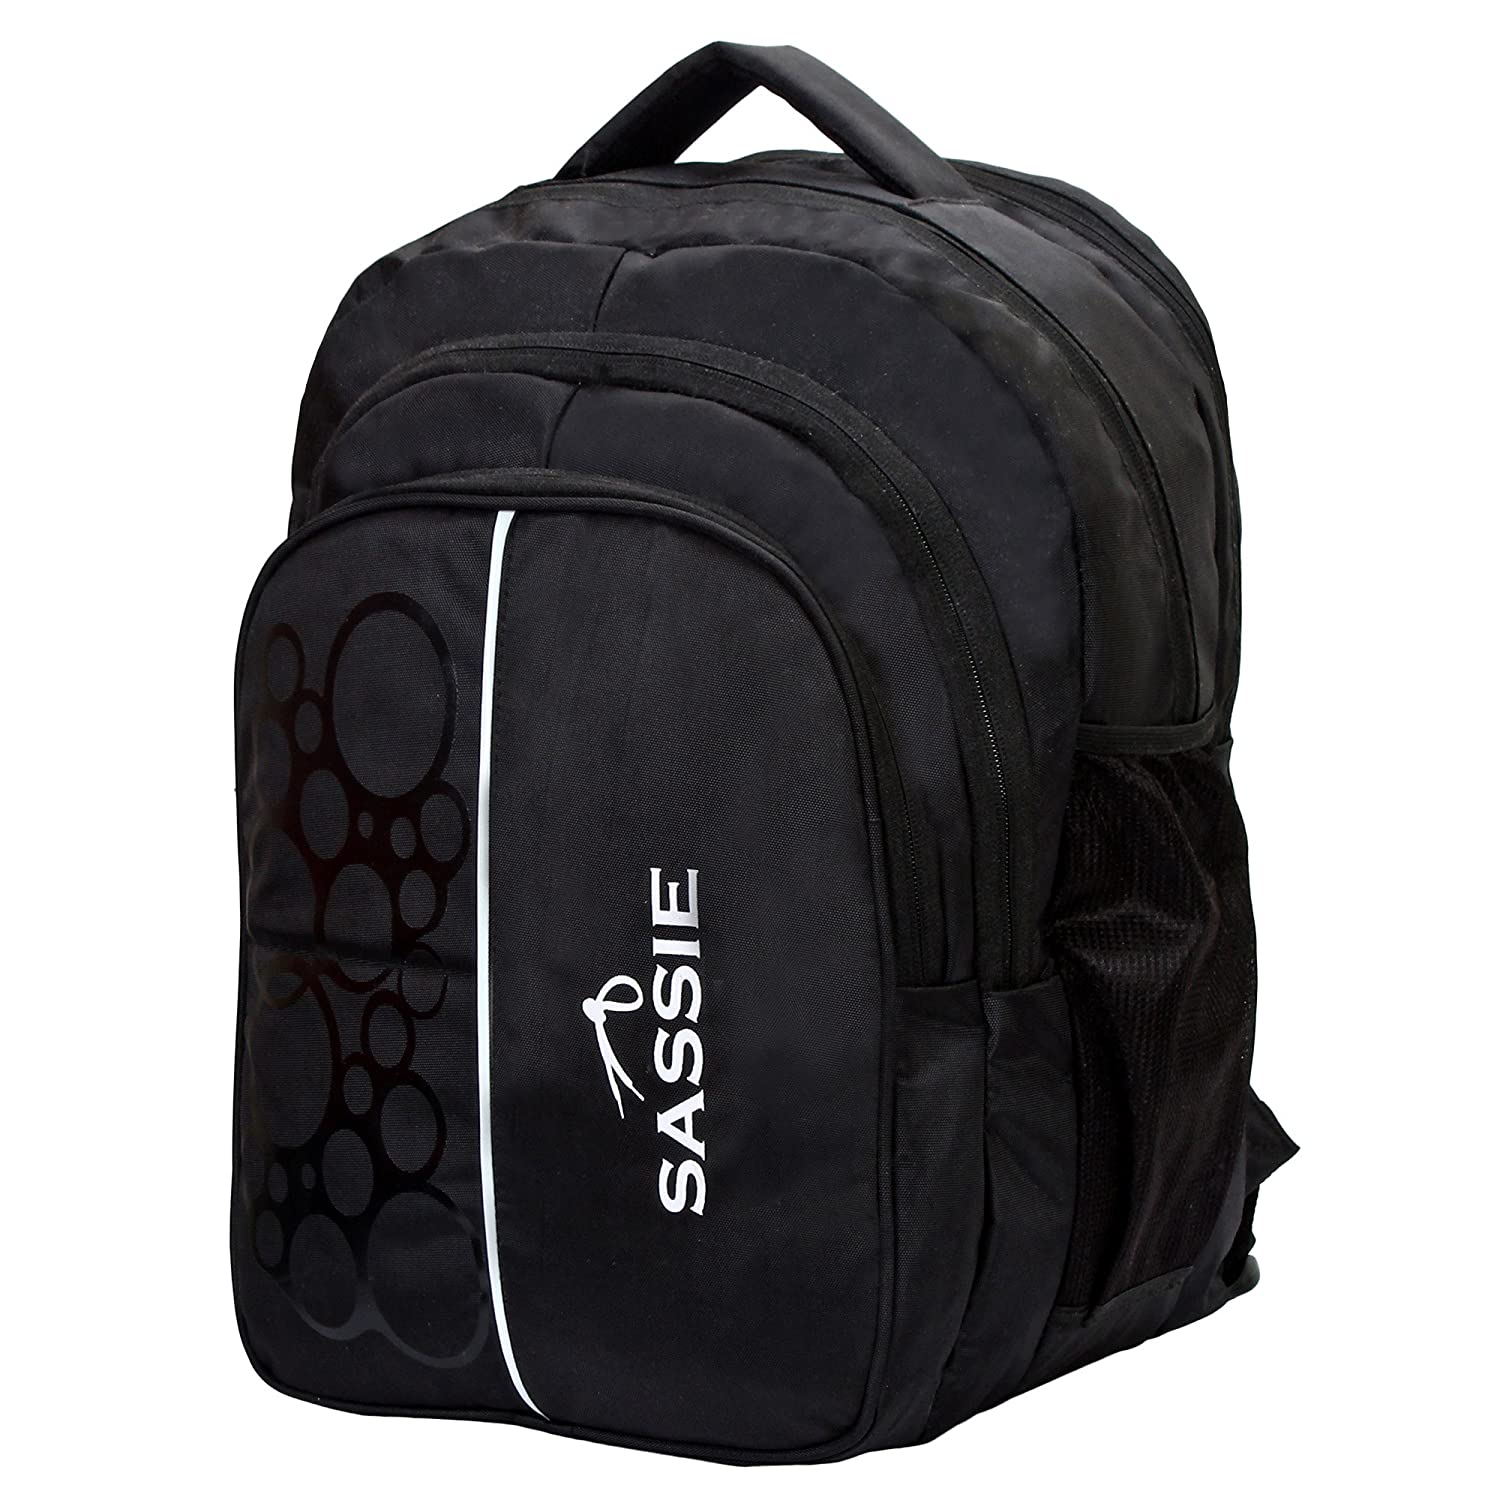 e7f8ed2c8c34 Sassie Polyester 41L Black School and Travel Backpack Bag with 4  Compartments  Amazon.in  Bags